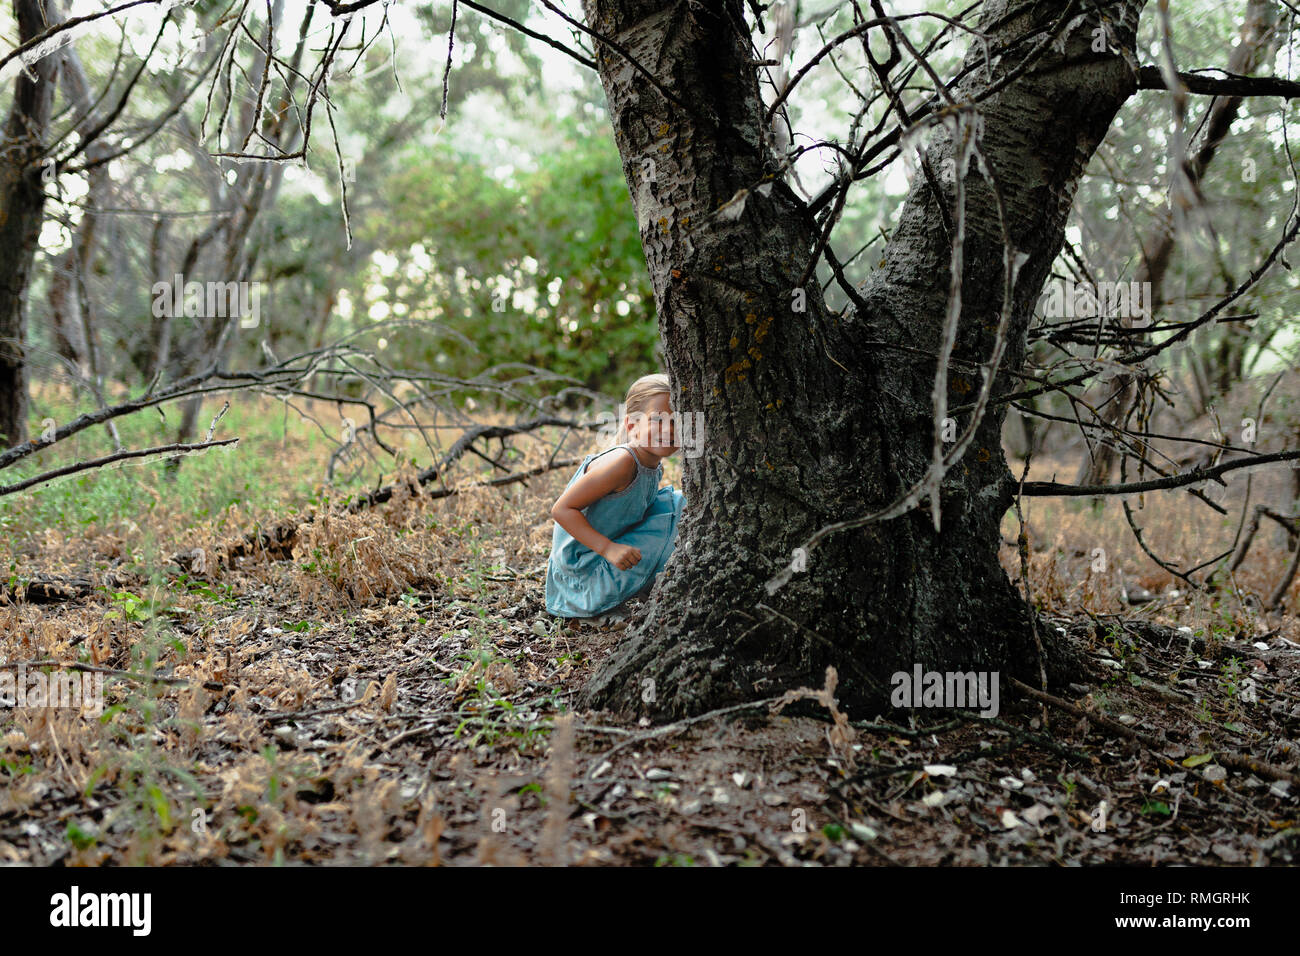 Young blonde girl crouched on the ground near a tree wearing a dress in the sunset field Stock Photo